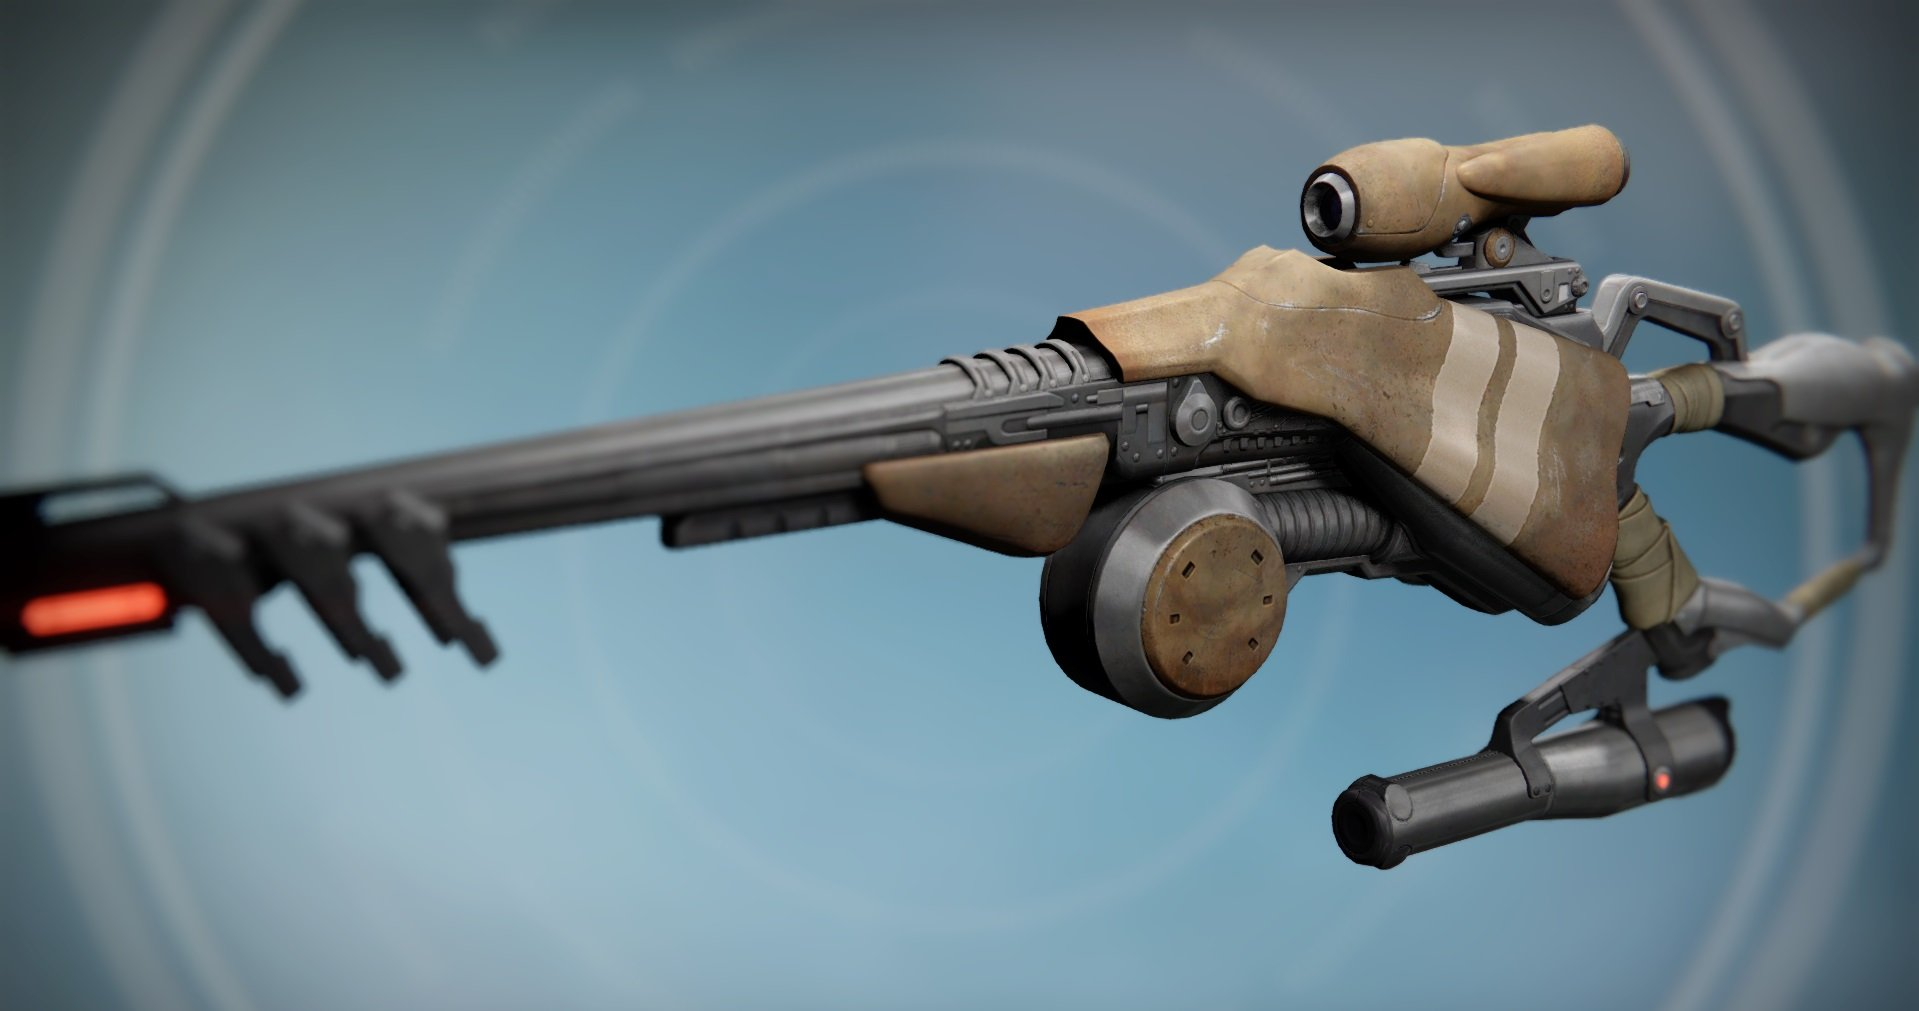 What Xur is selling in Destiny 2 - March 20, 2020